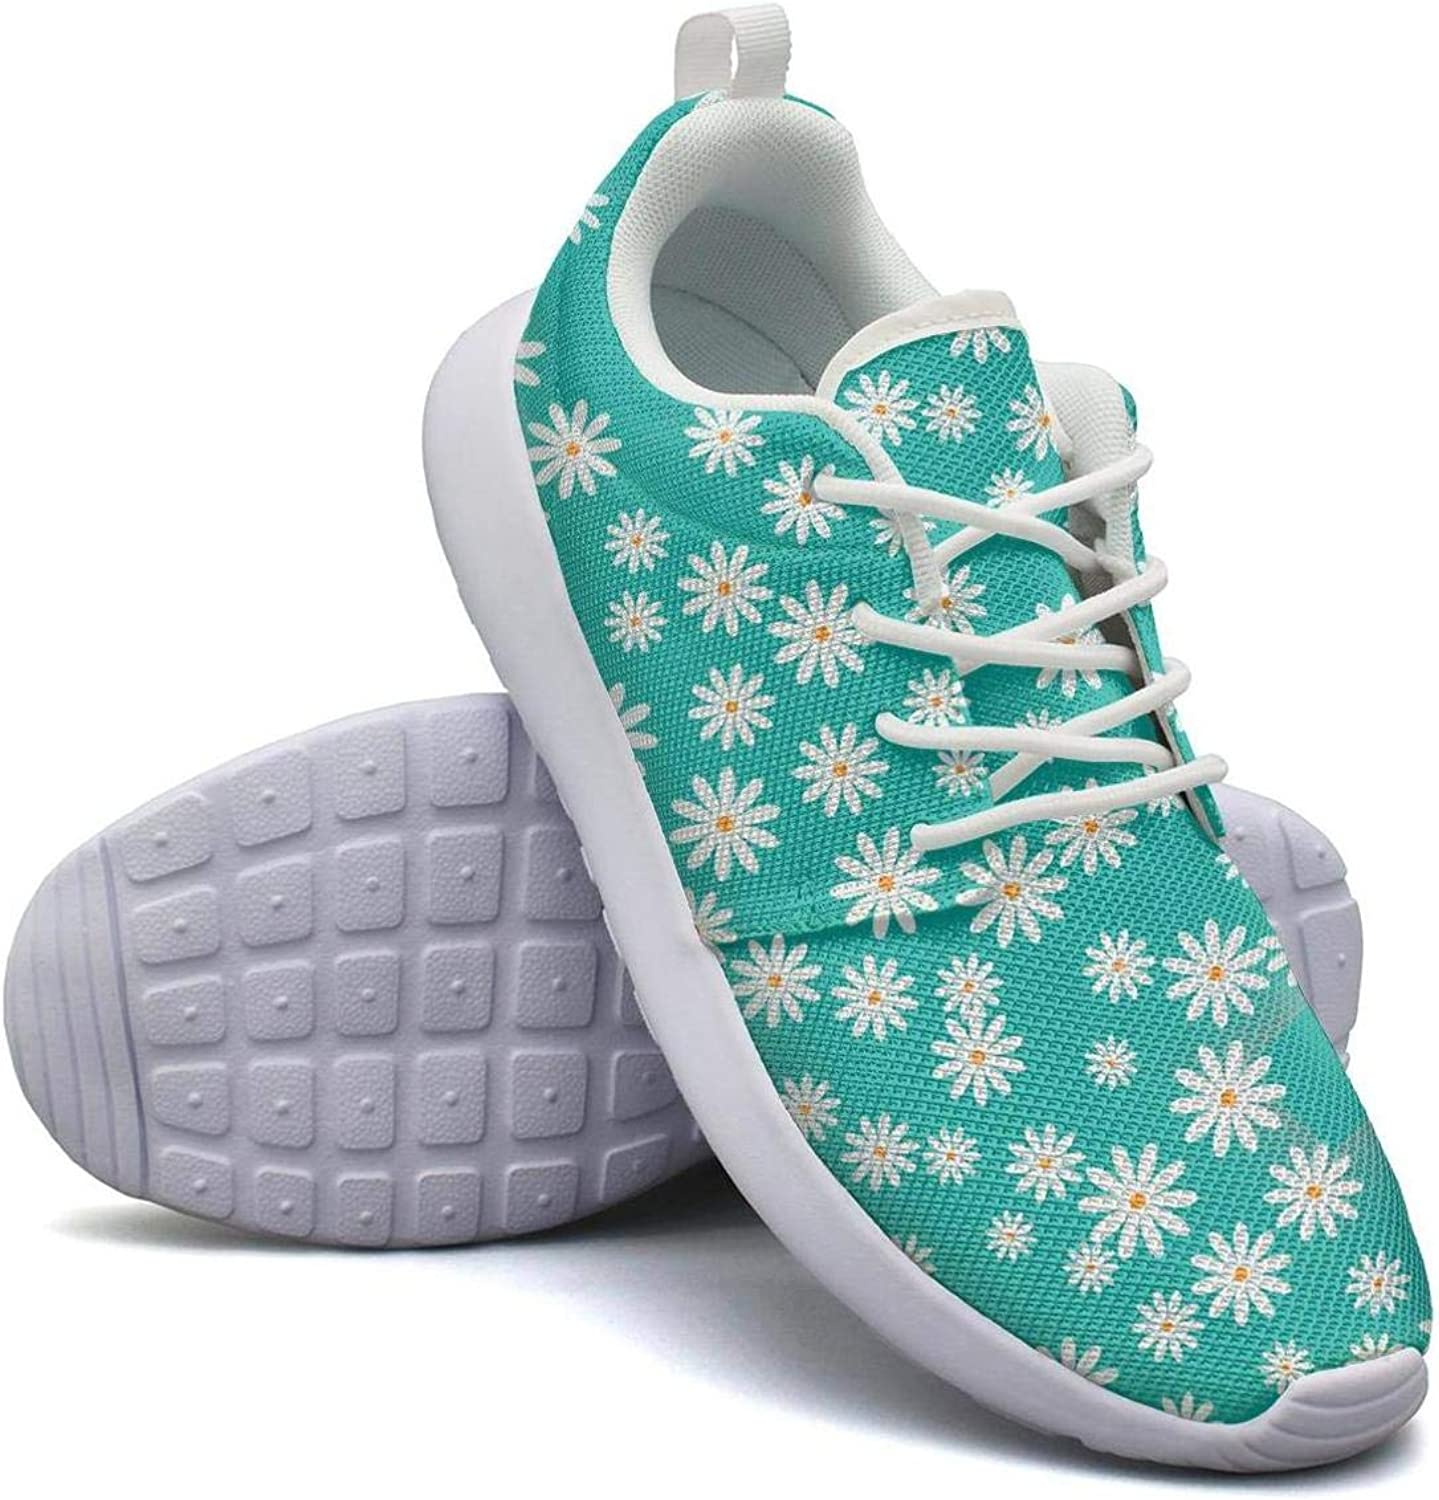 CHALi99 Comfort Womens Lightweight Mesh shoes Daisy Daisies Flowers Sneakers Sport Rubber Sole